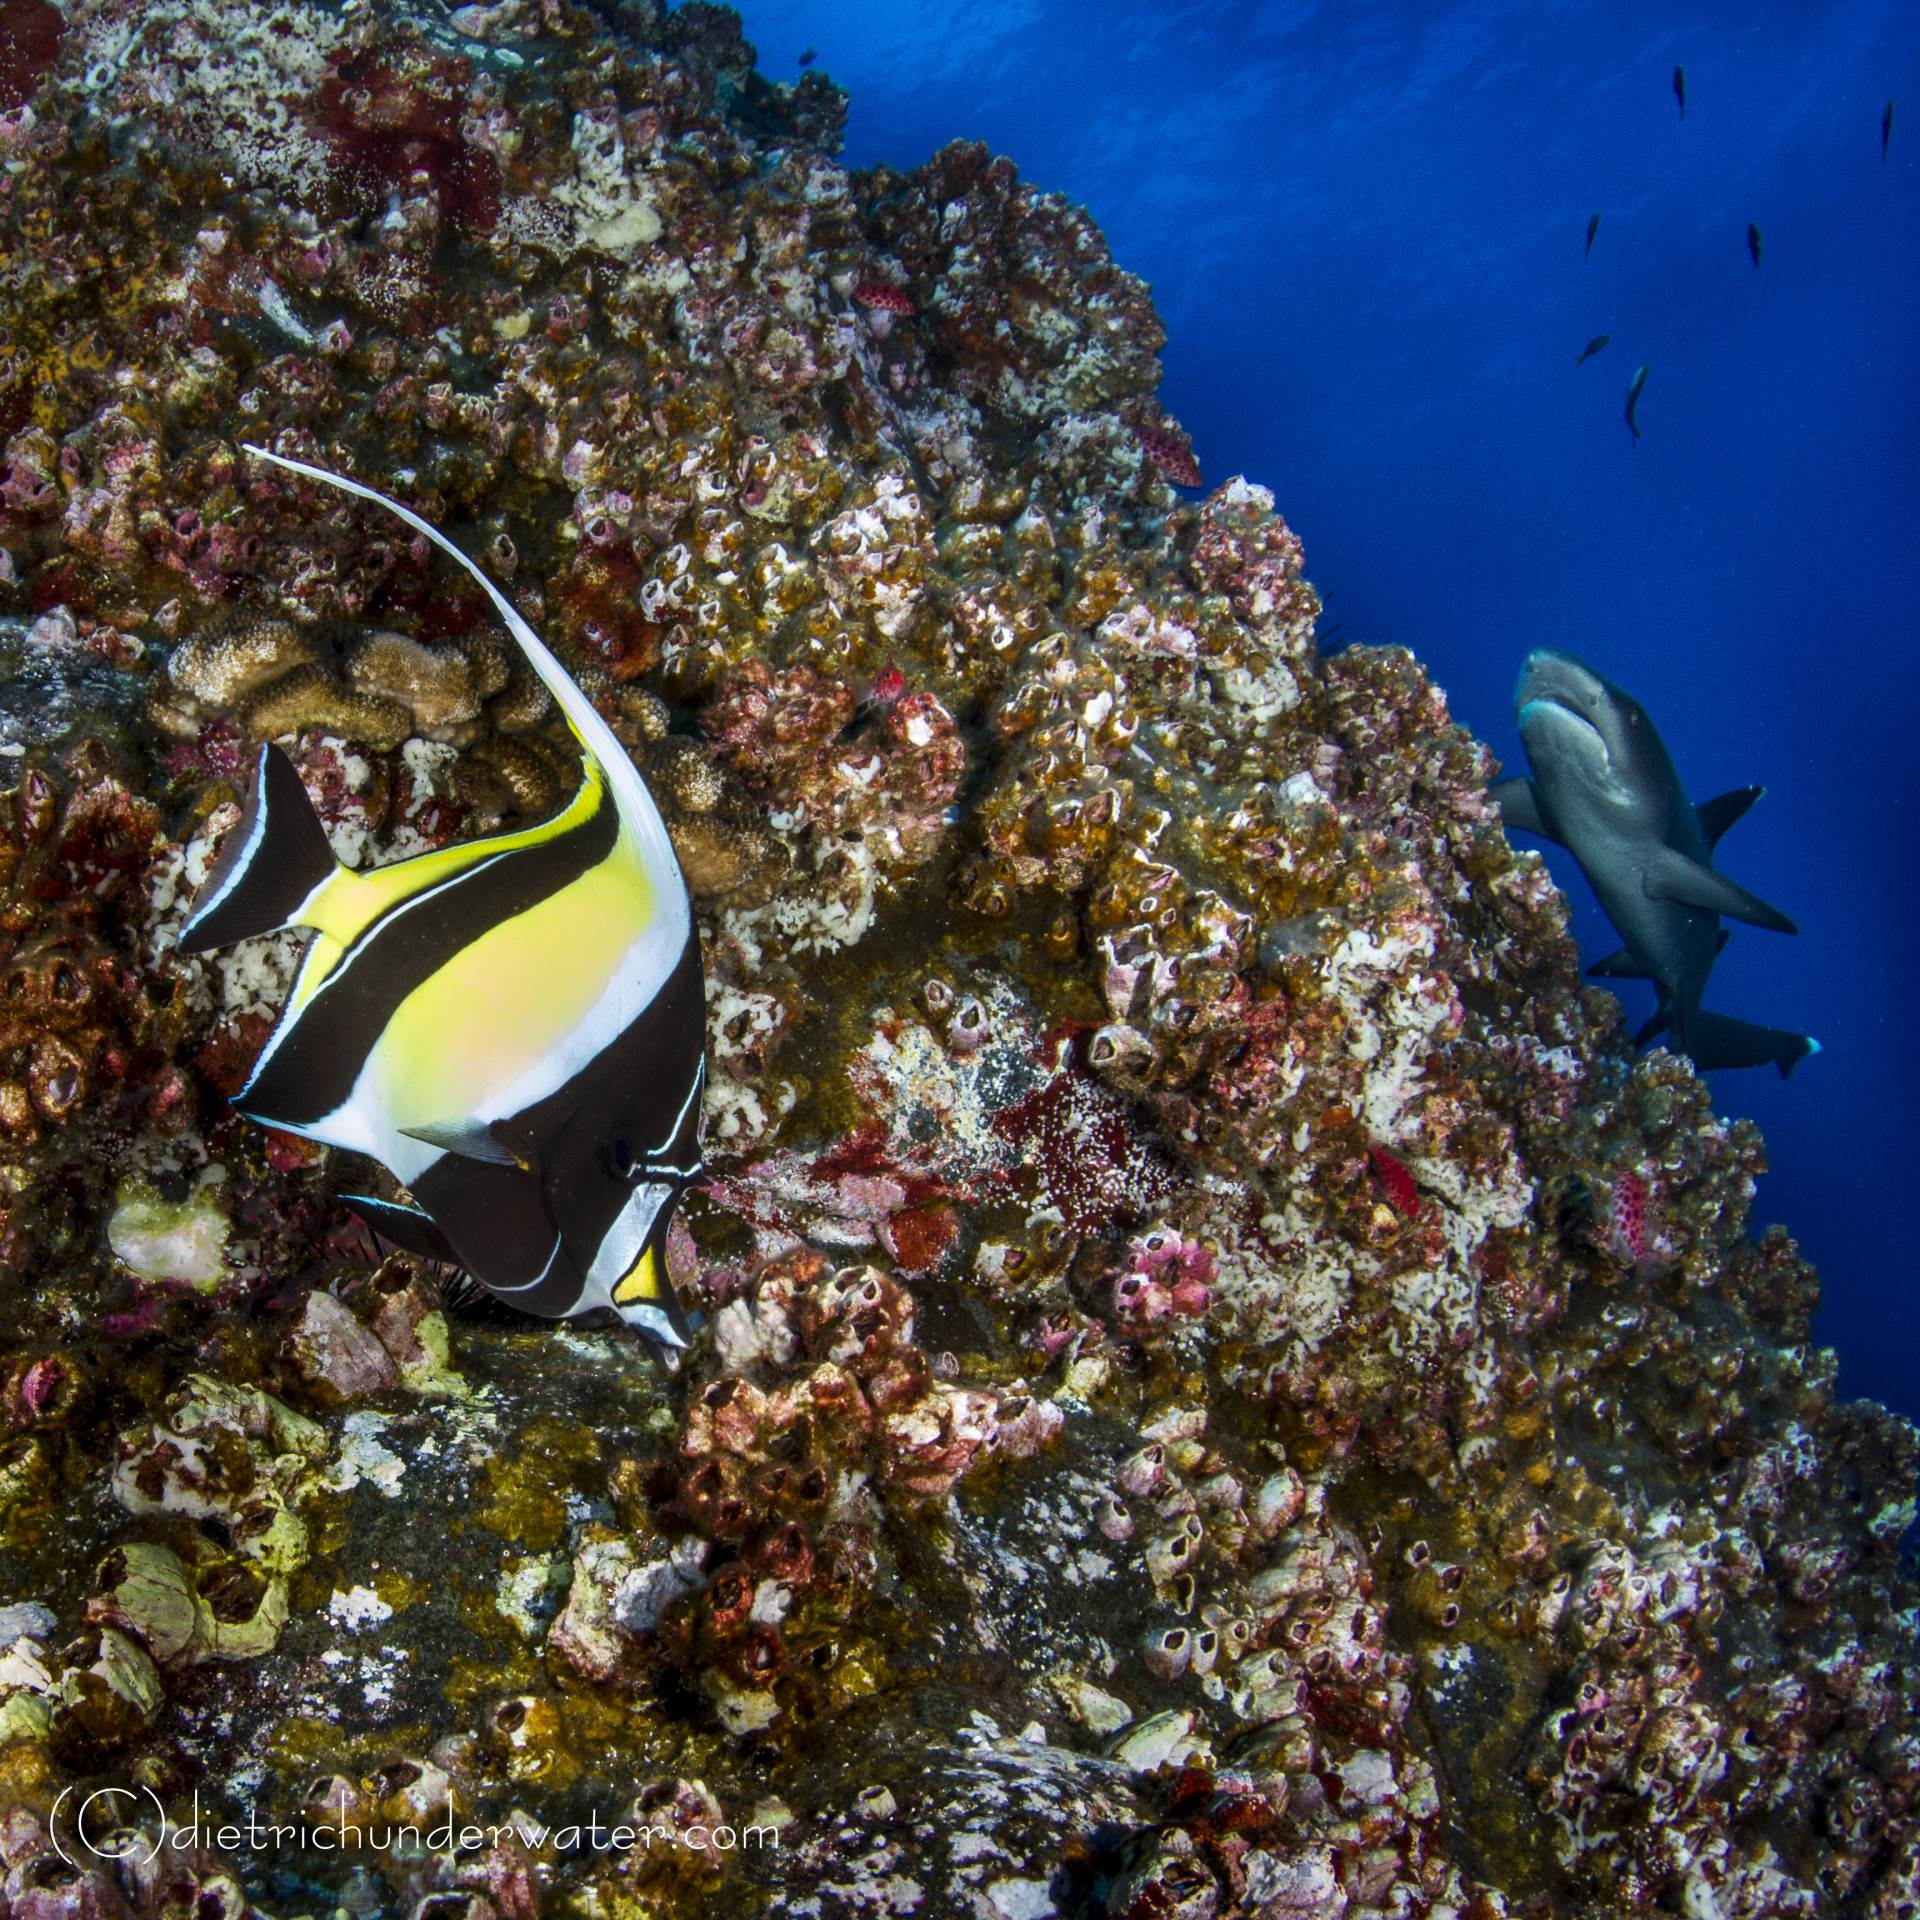 Beauty & the Beast:  a great image of a Moorish Idol and Whitetip shark against a beautiful reef.